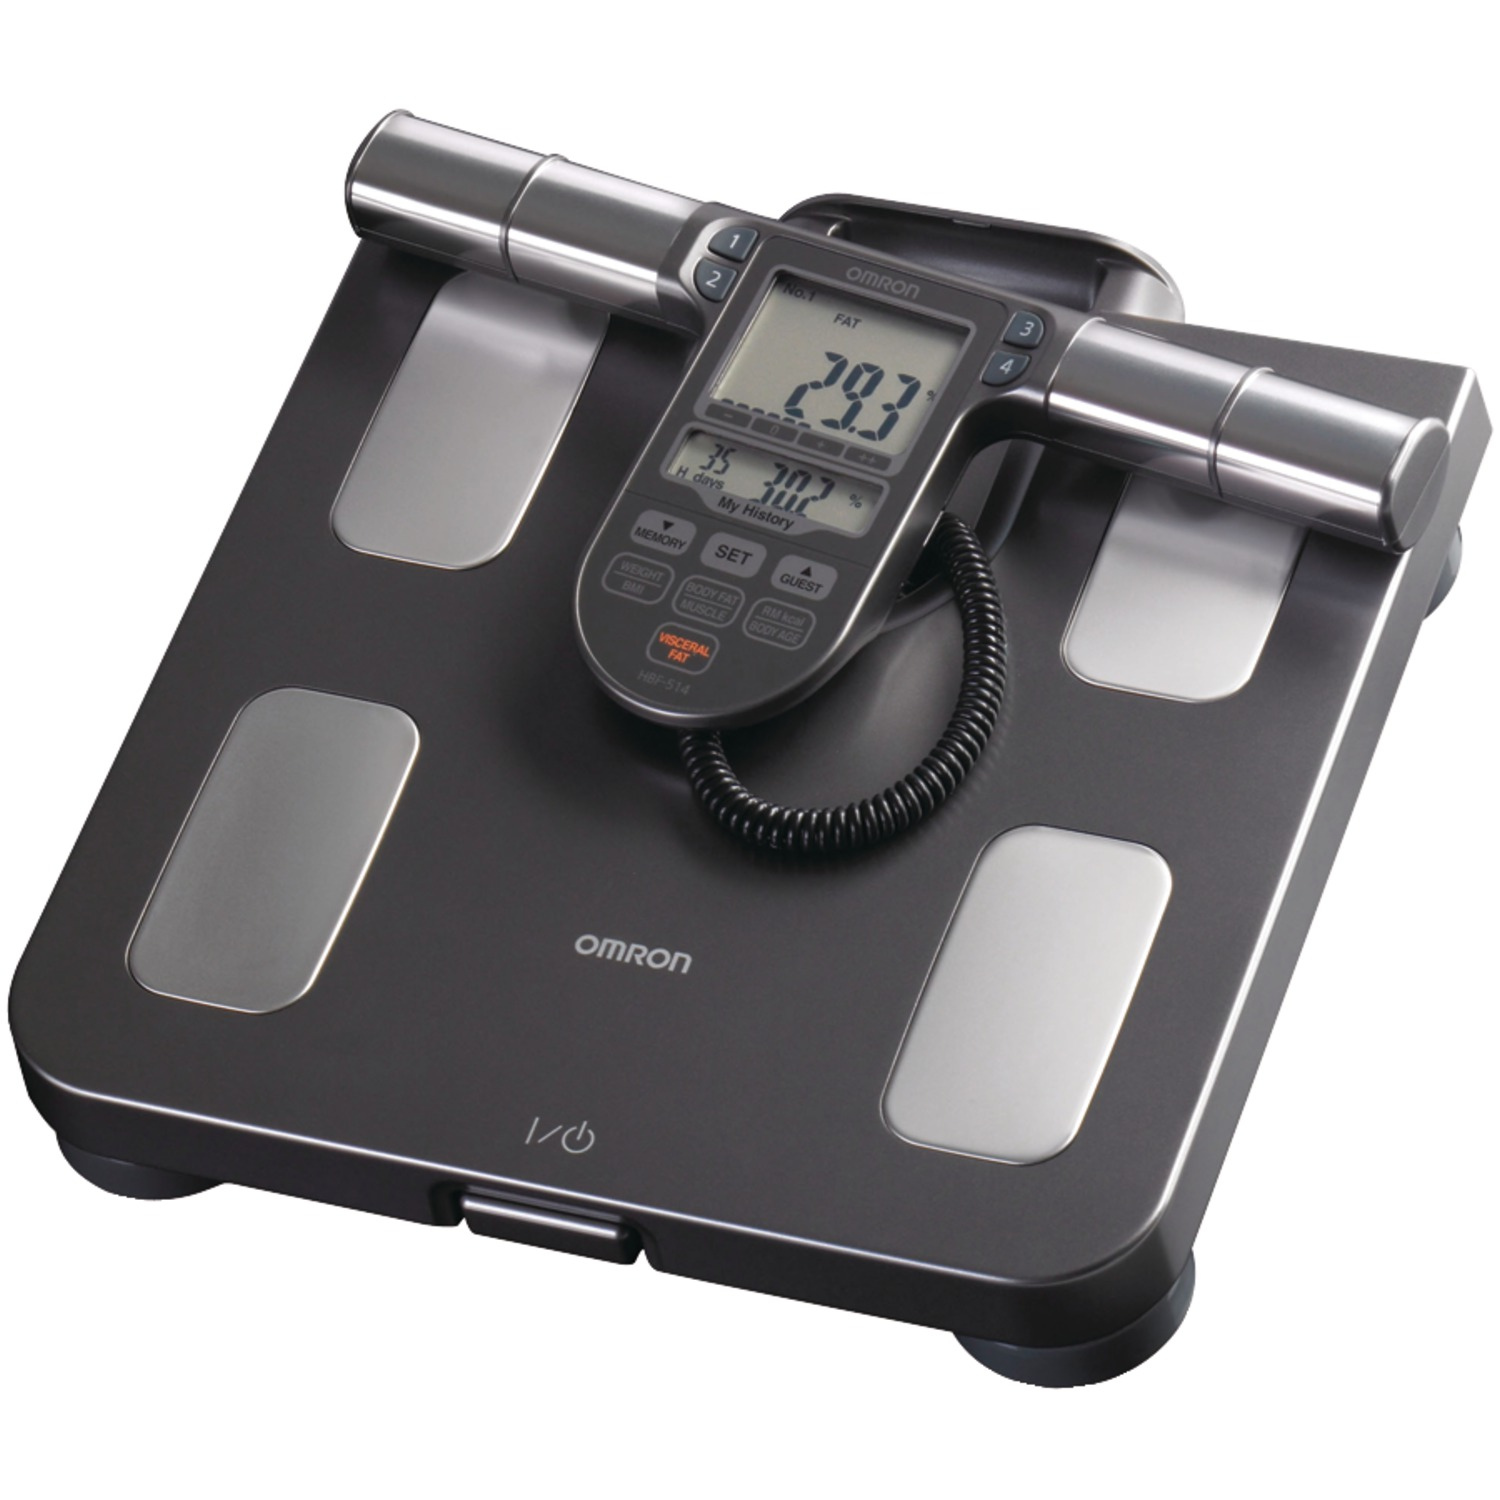 Omron HBF-514C Full-Body Sensor Body Composition Monitor & Scale With 7 Fitness Indicators (90-day Memory) & BP654 7 Series Bluetooth Wrist Blood Pressure Monitor